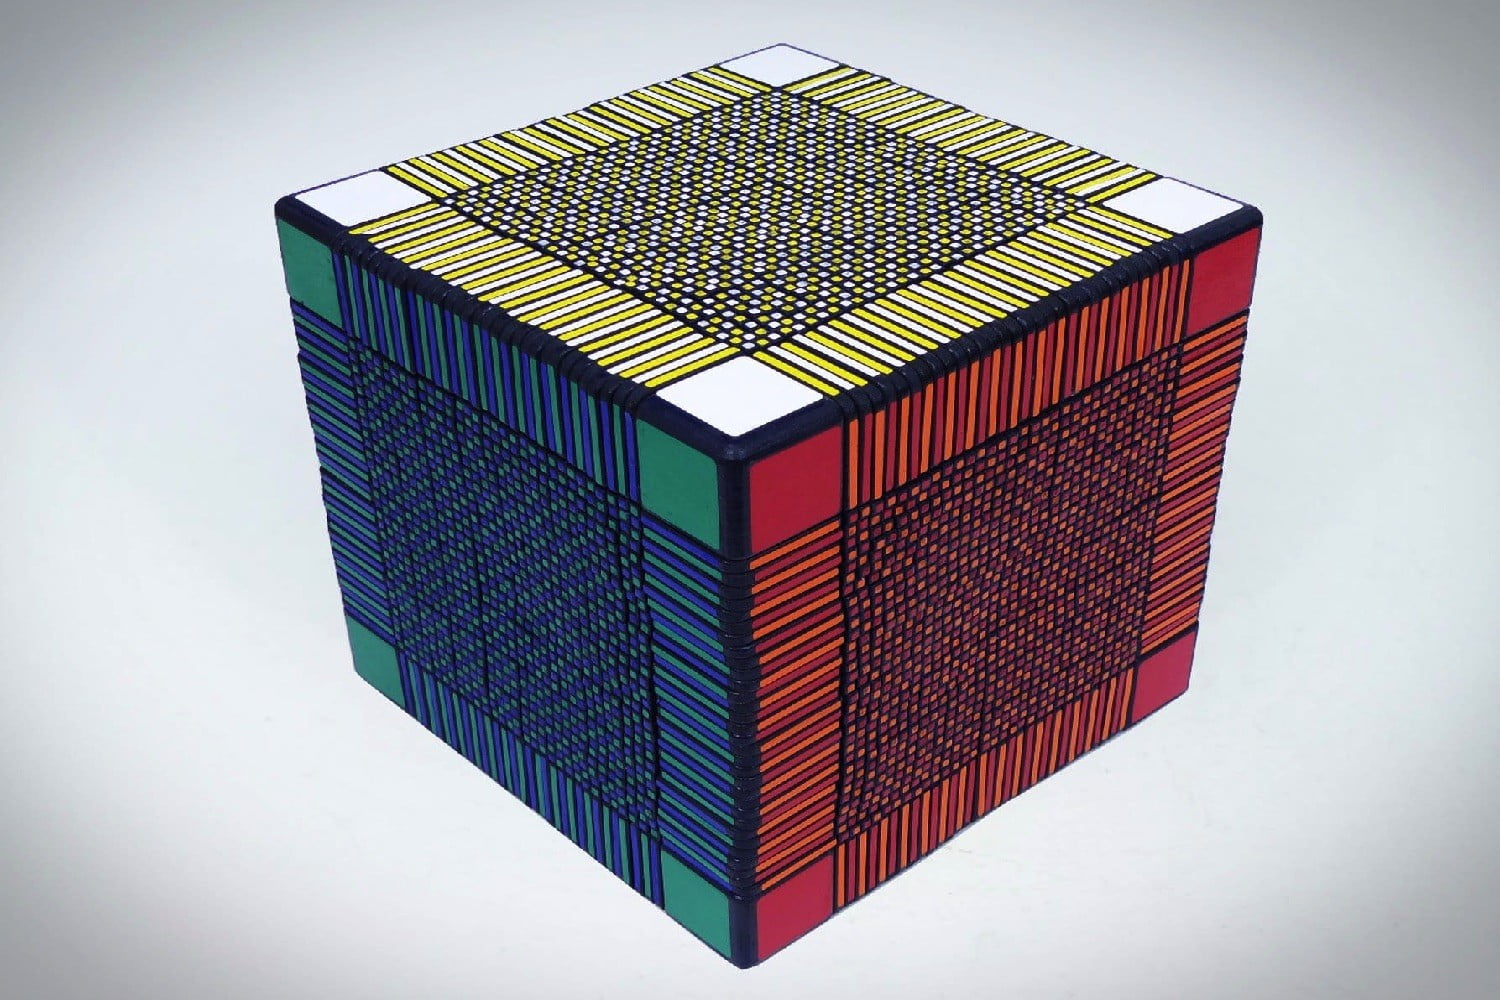 record-breaking rubik's cube will take hundreds of hours to complete